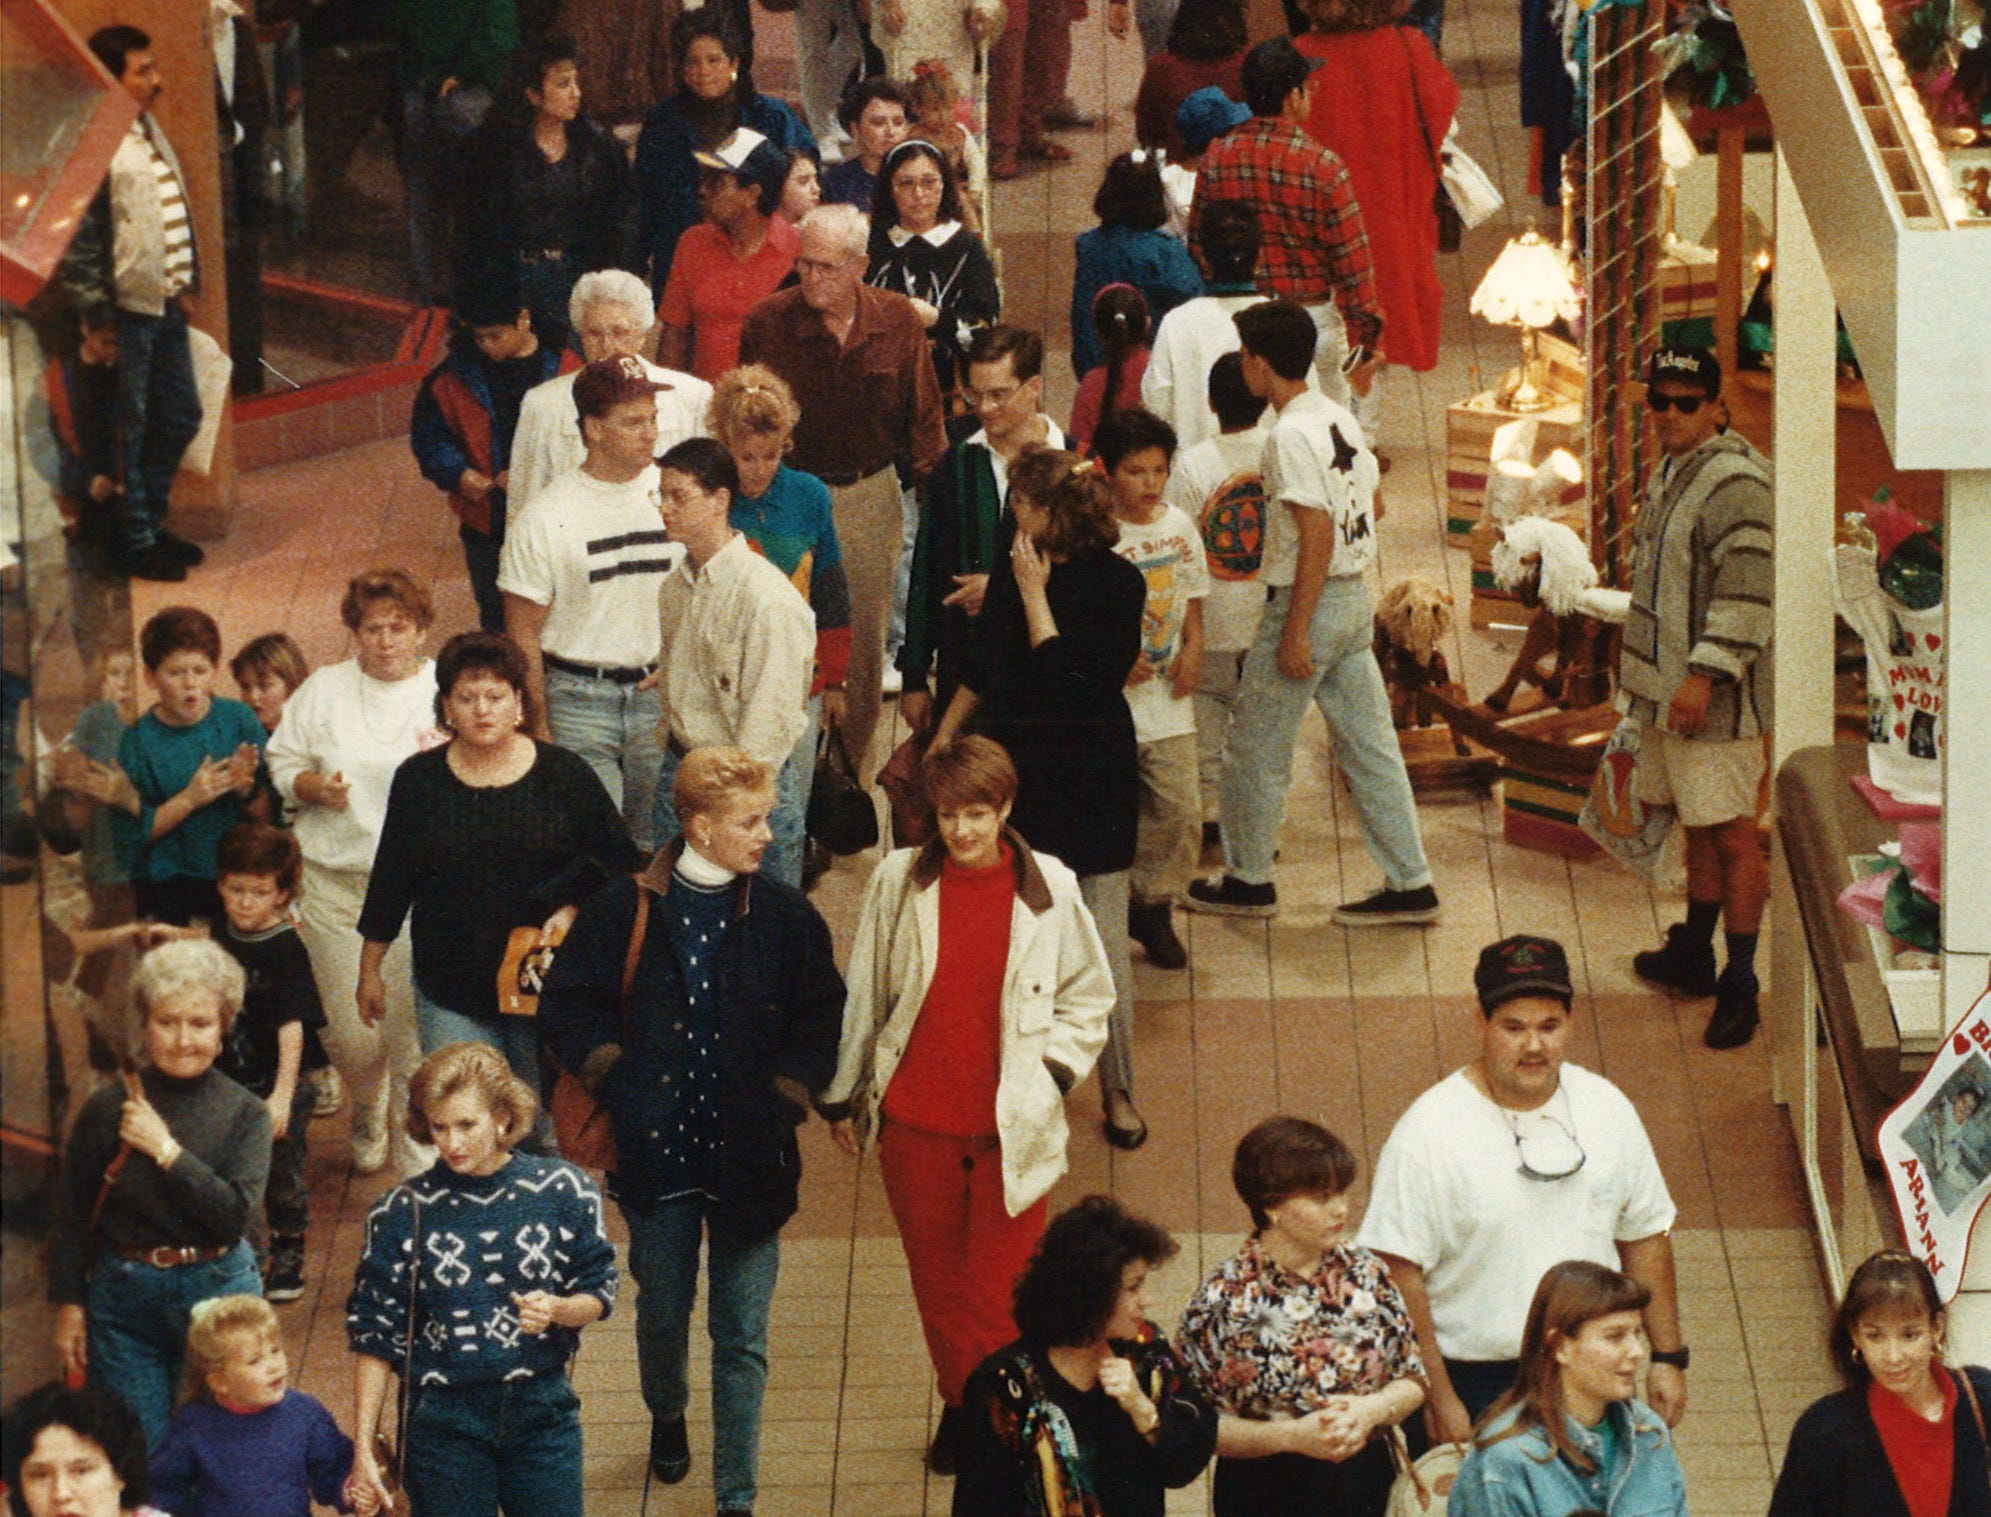 Christmas shoppers at Padre Staples Mall in Corpus Christi work their way through the crowds shortly after lunch time on Nov. 27, 1992.